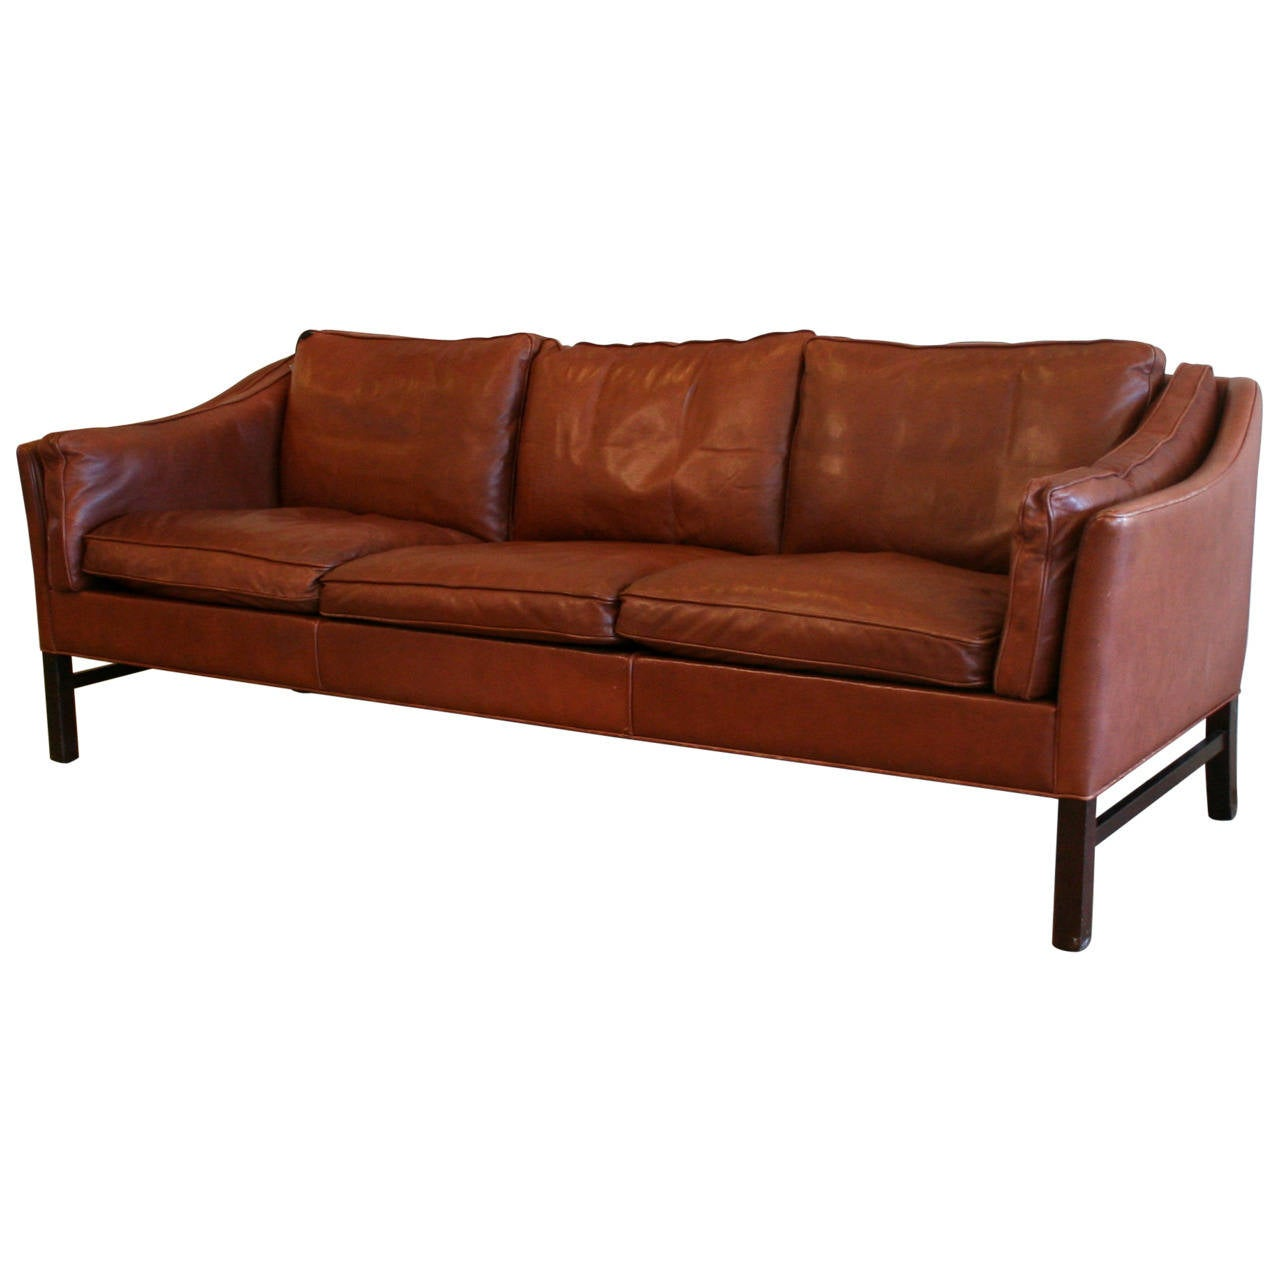 Vintage Danish Red Brown Leather Sofa At 1stdibs